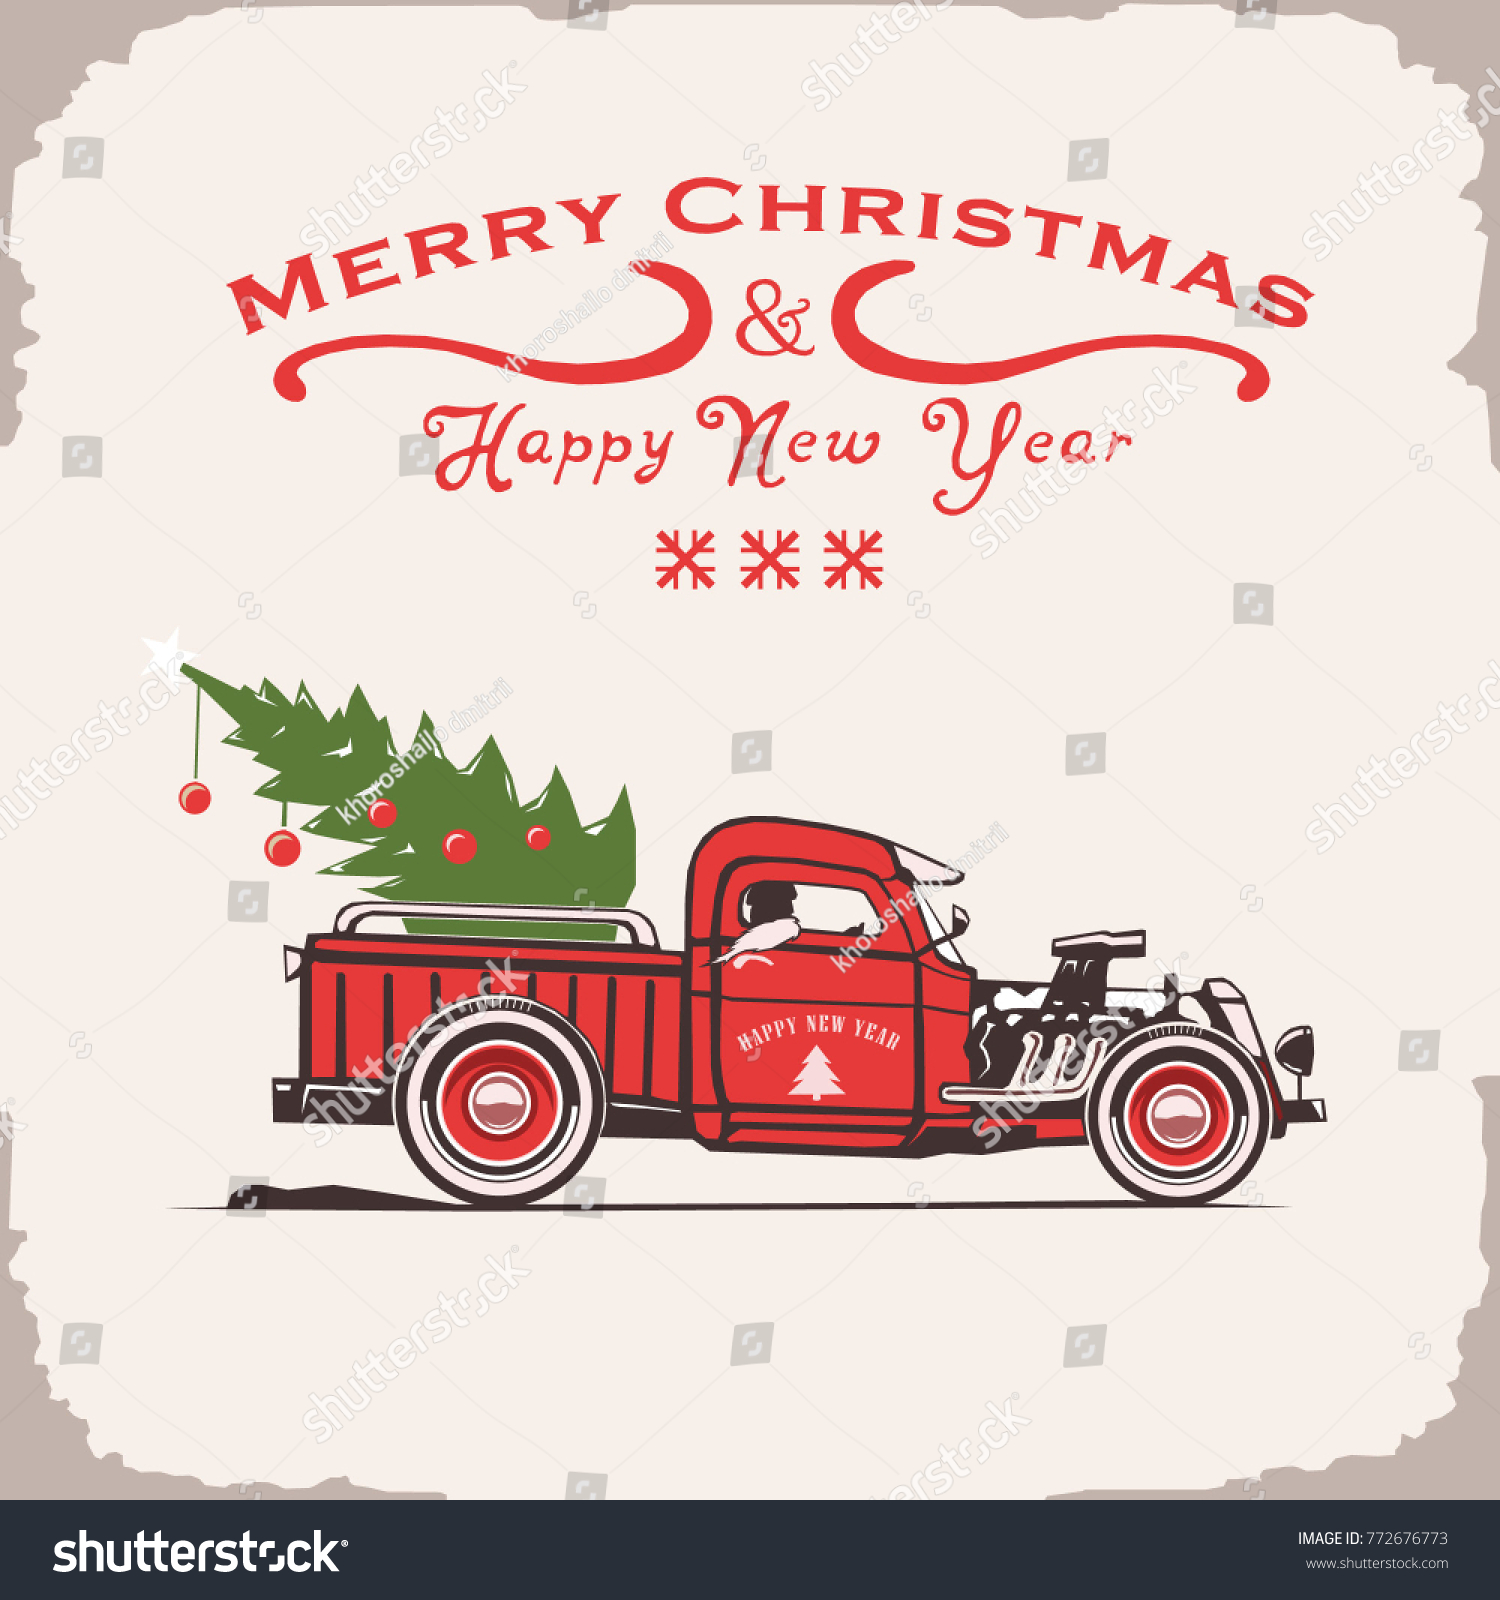 Vector Merry Christmas And Happy New Year Truck Side View Retro Poster Vintage